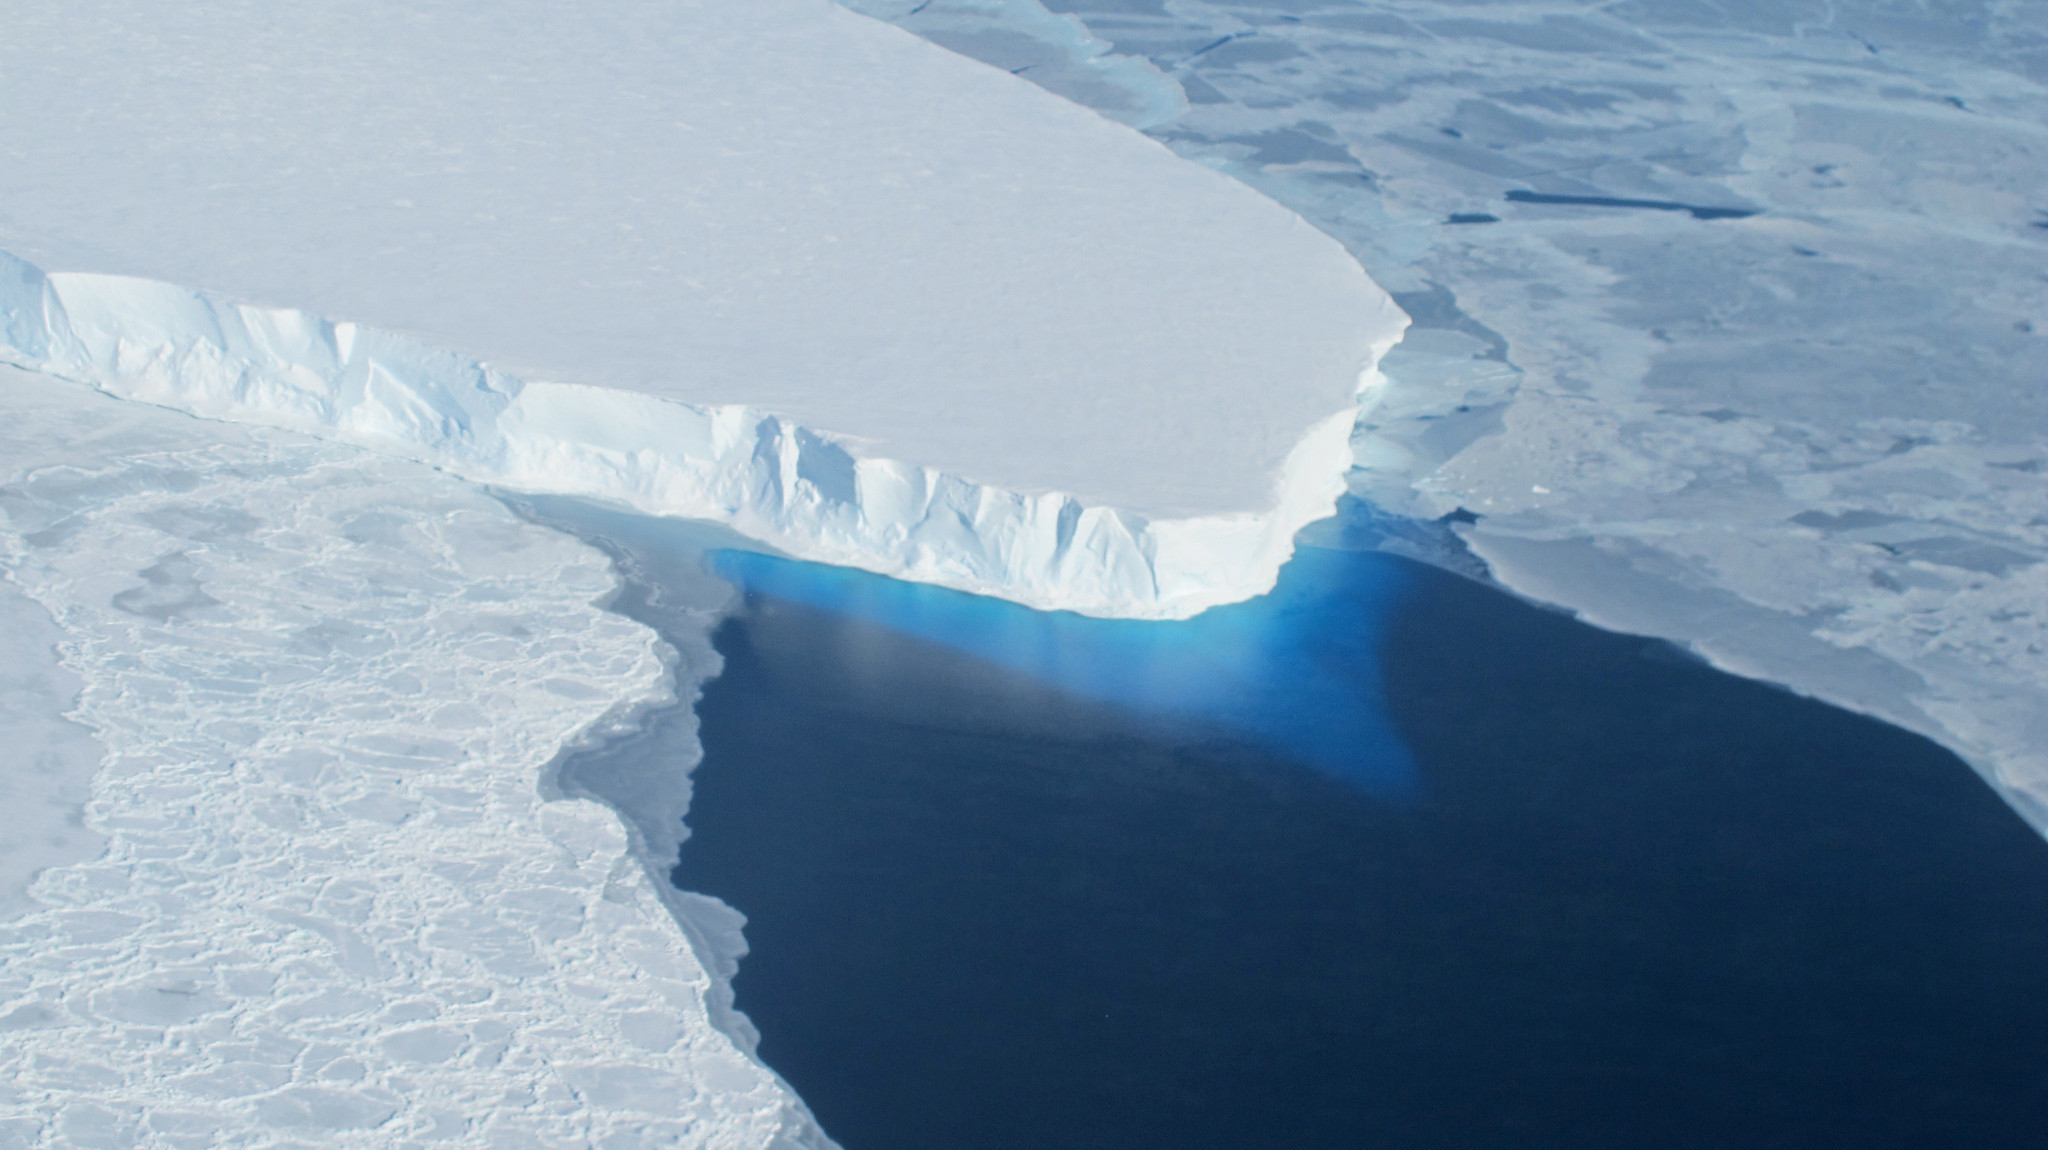 Antarctica's ice is being carved up from below